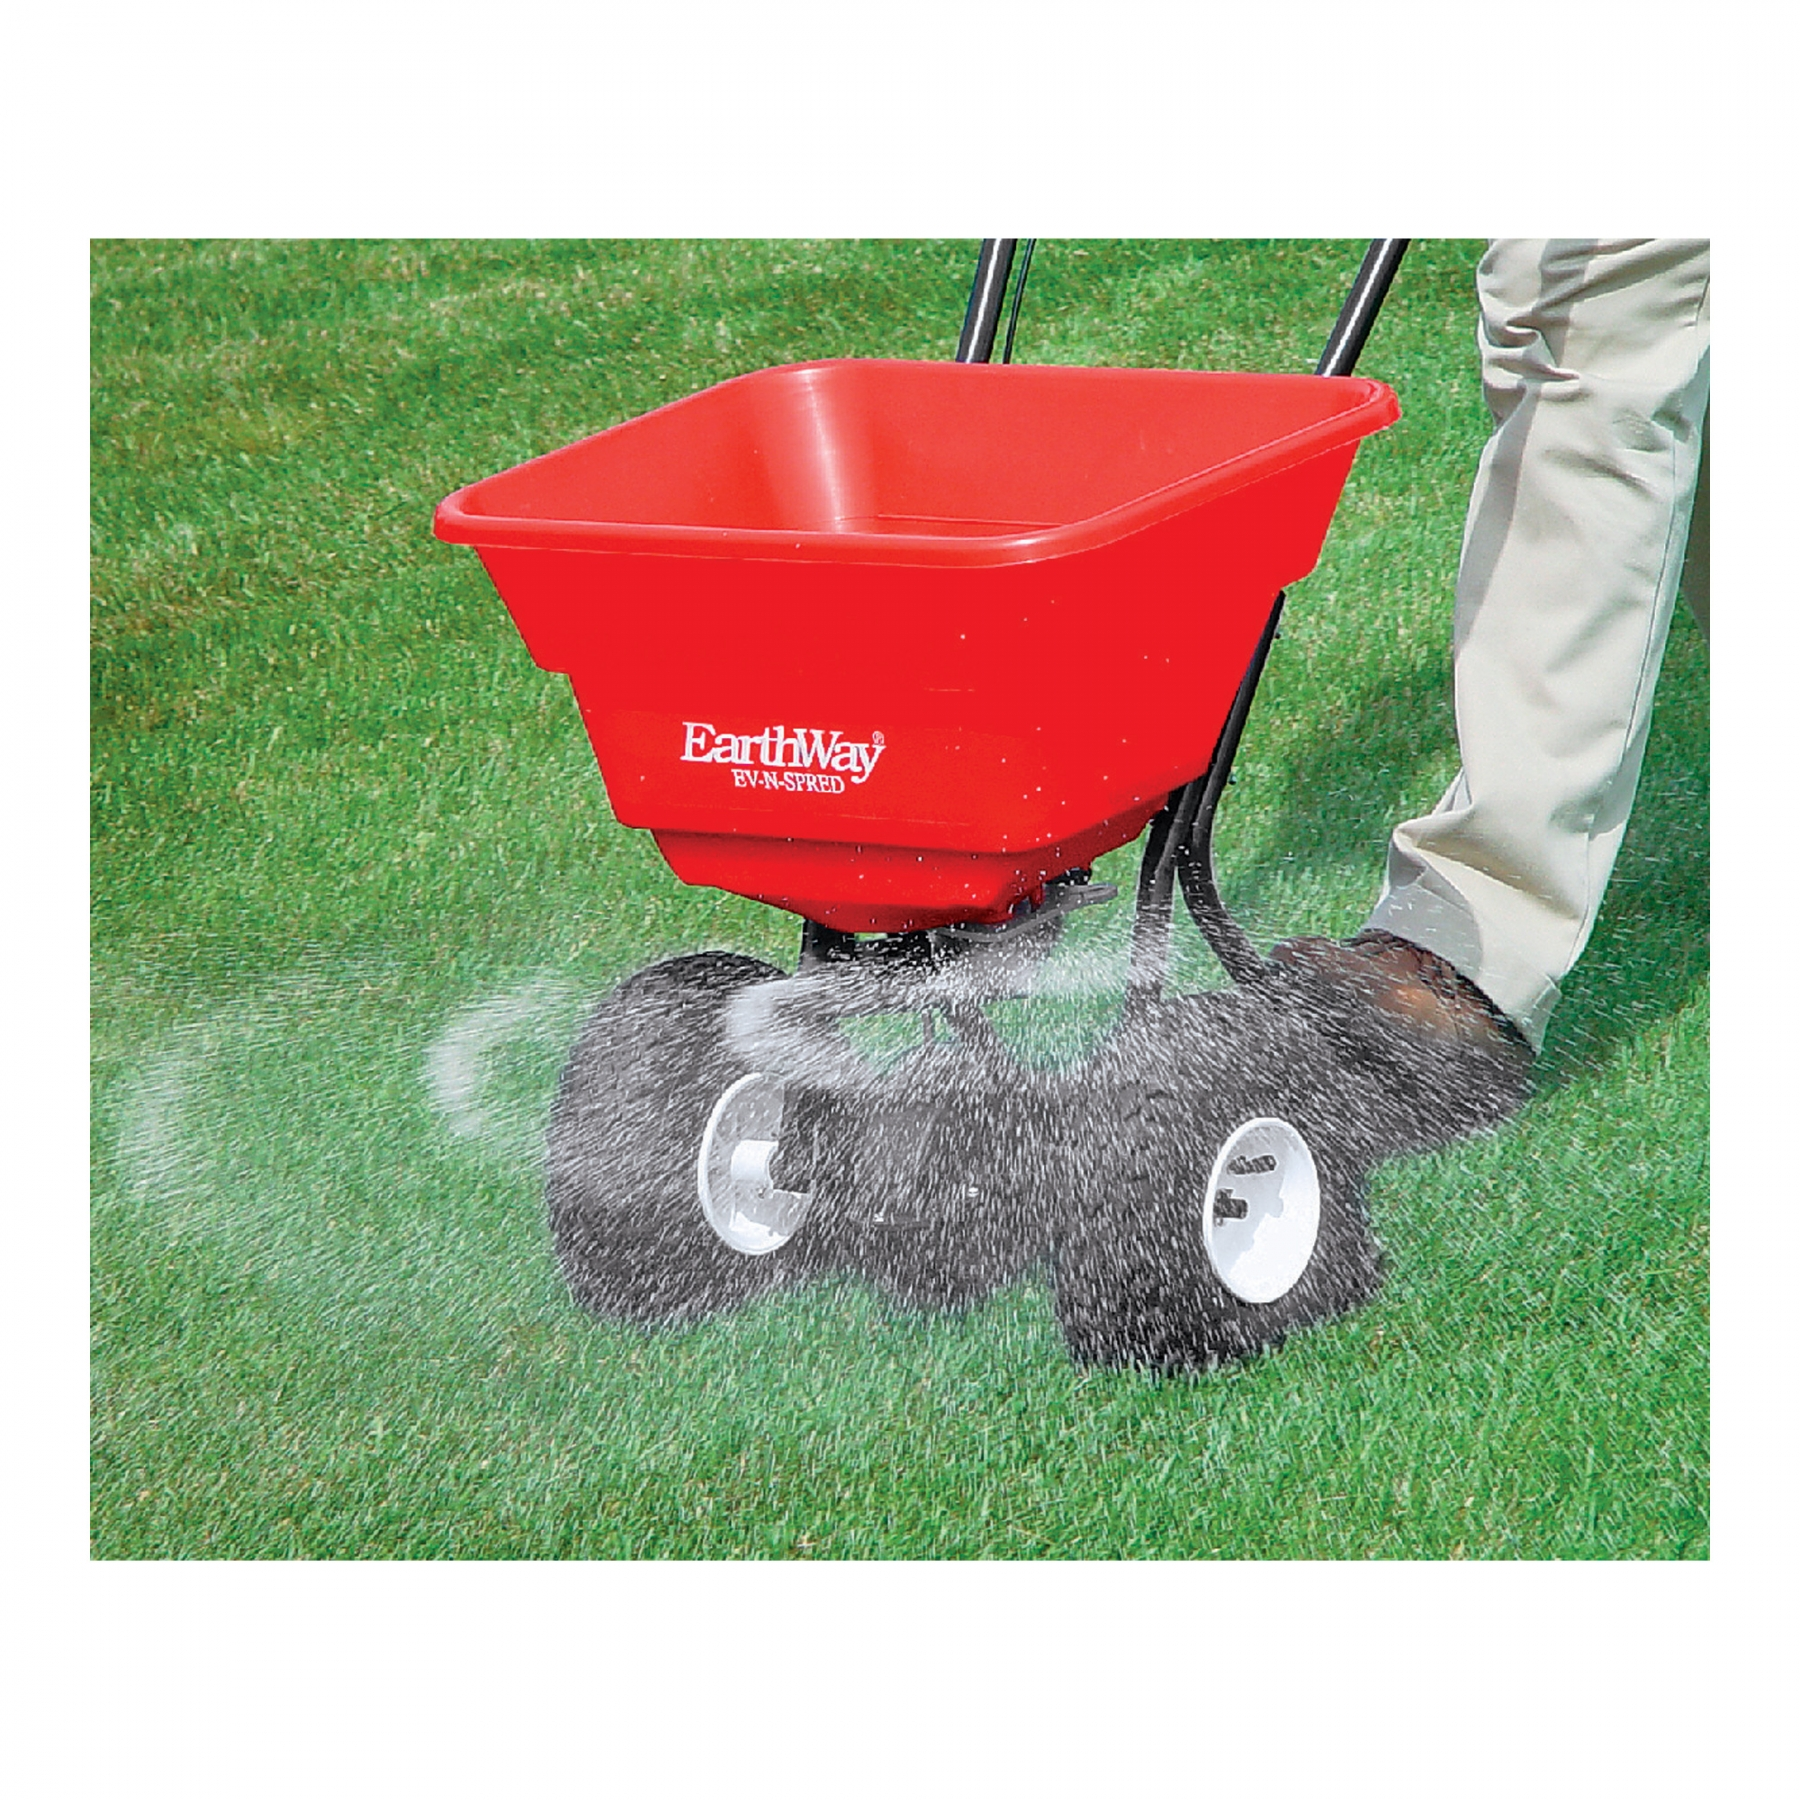 Best way to plant grass seed - Step 6 Planting